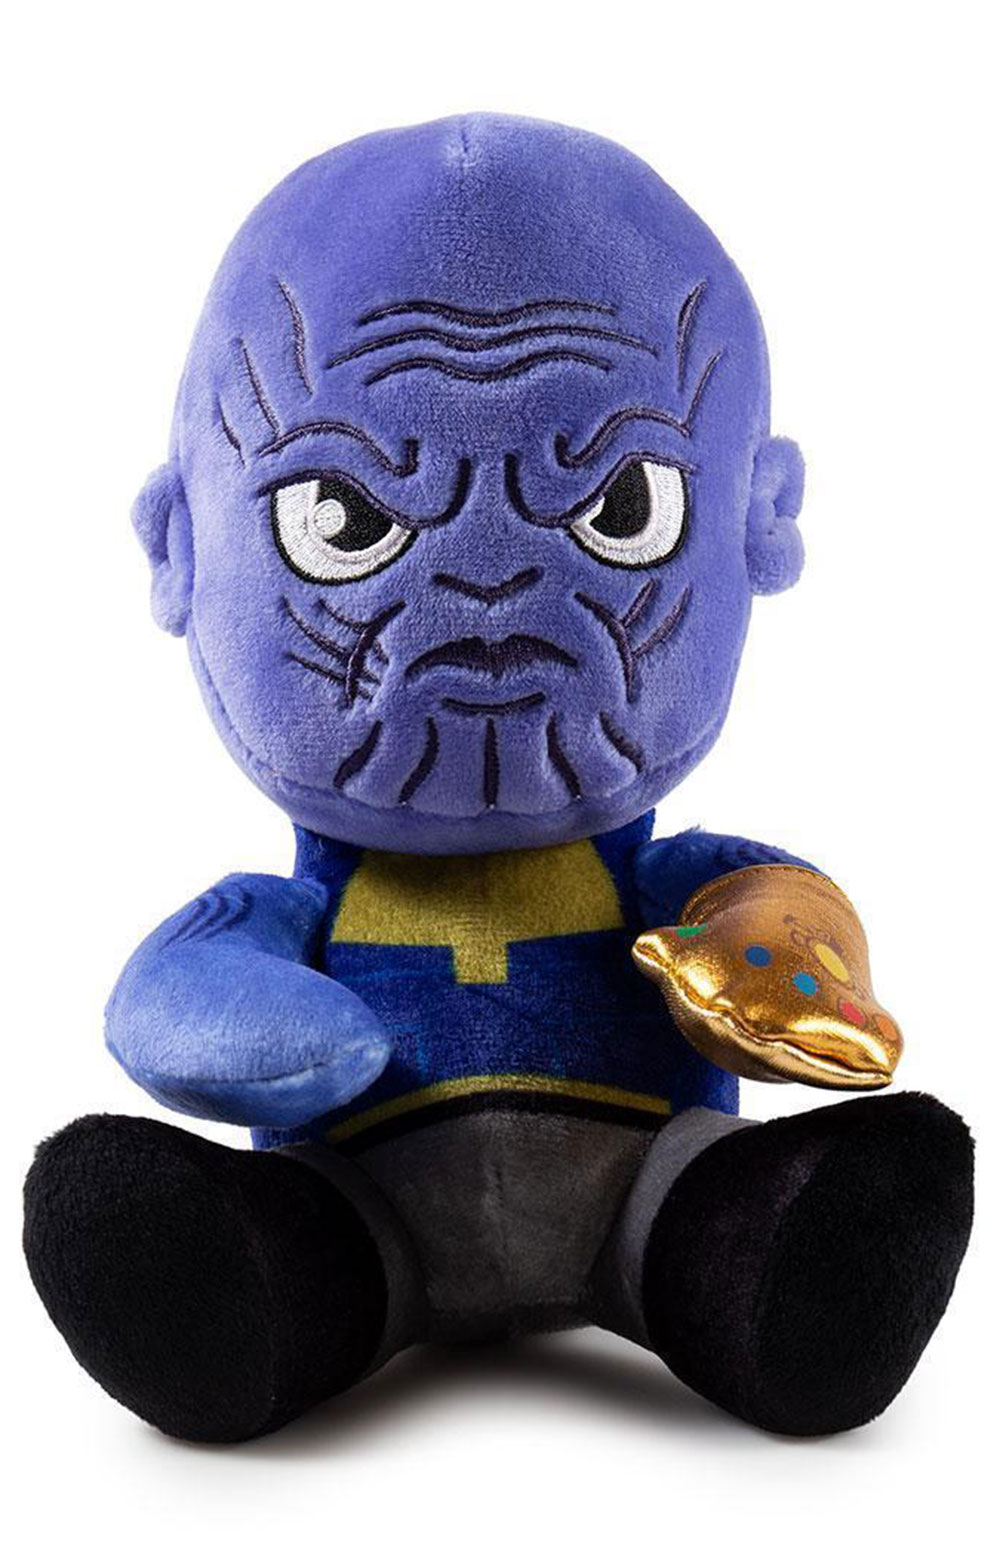 Thanos Phunny Plush Toy